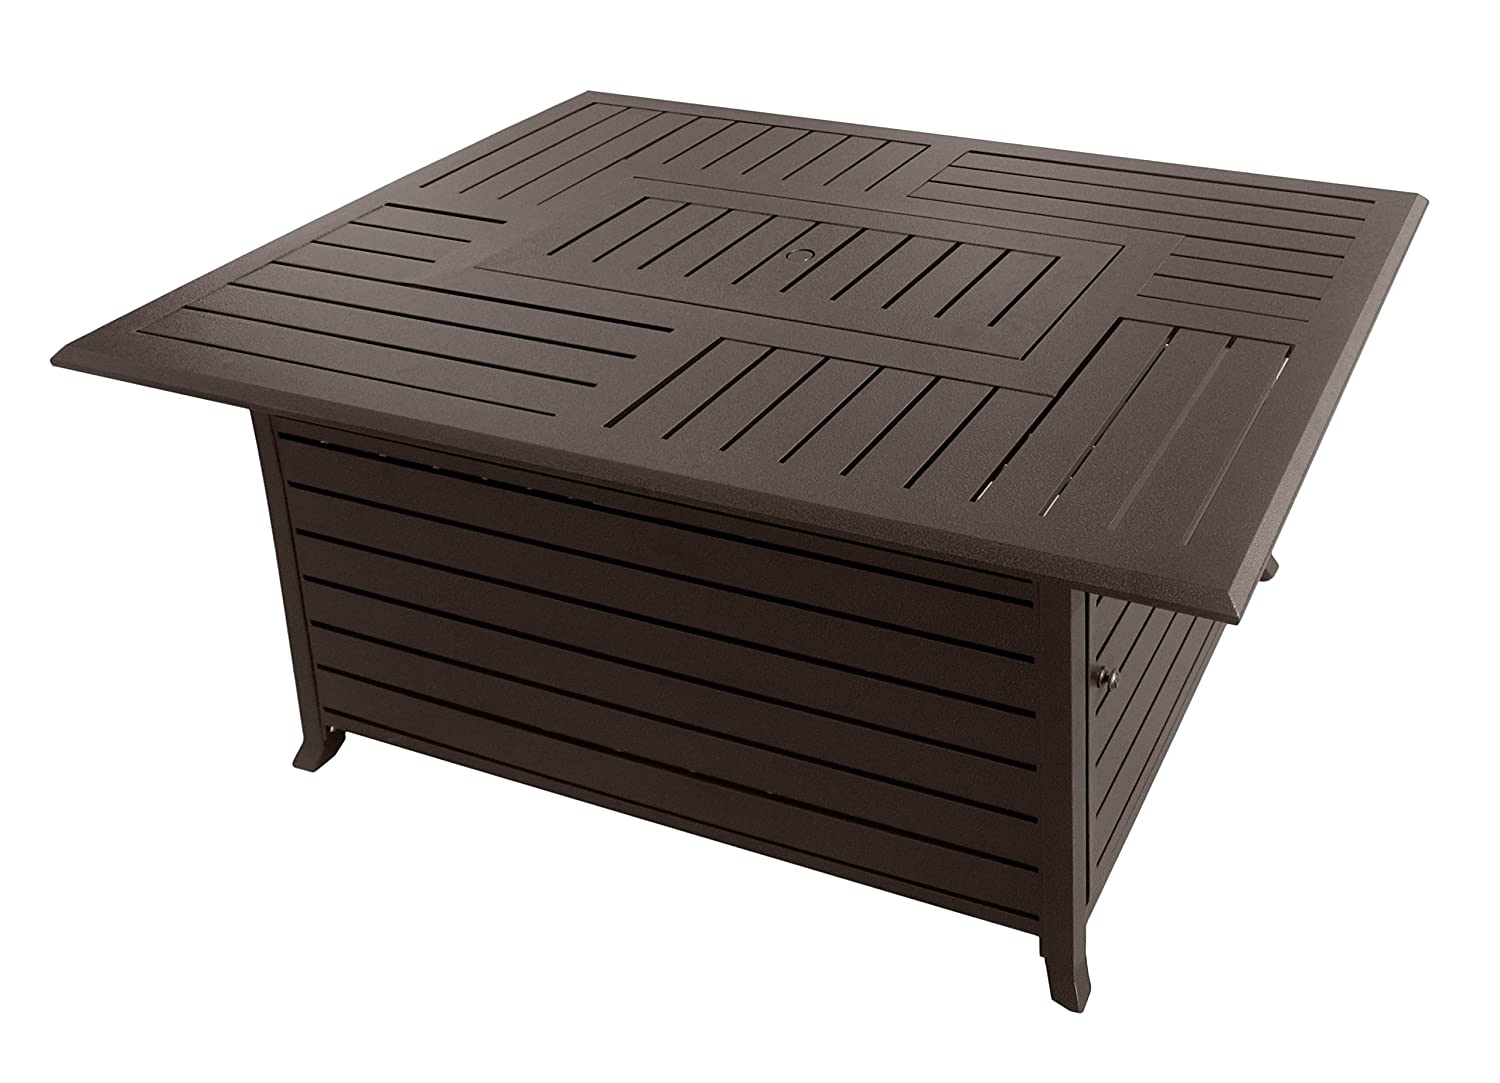 Awesome Amazon.com : AZ Patio Heaters Fire Pit, Extruded Aluminum Rectangular :  Garden U0026 Outdoor